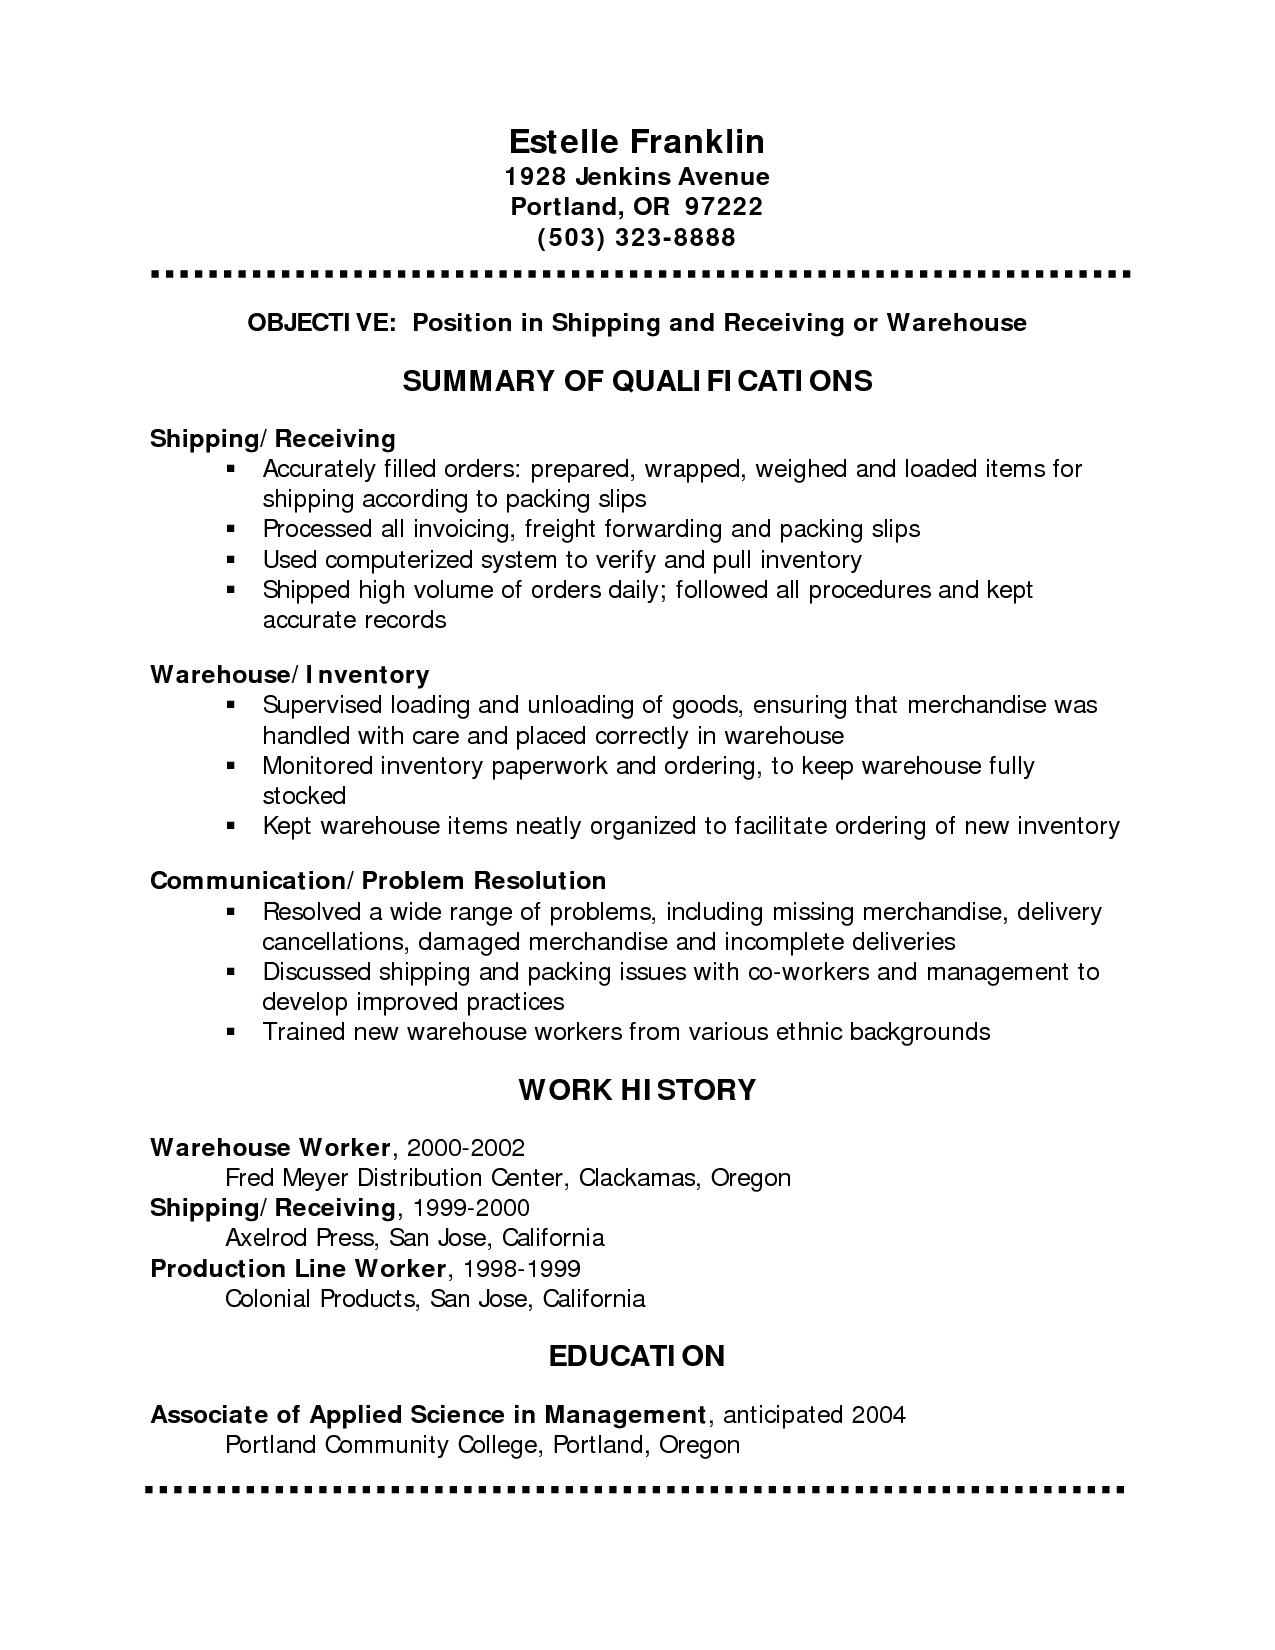 Resume examples free professional templates best template resume examples free professional templates best template downloadable yelopaper